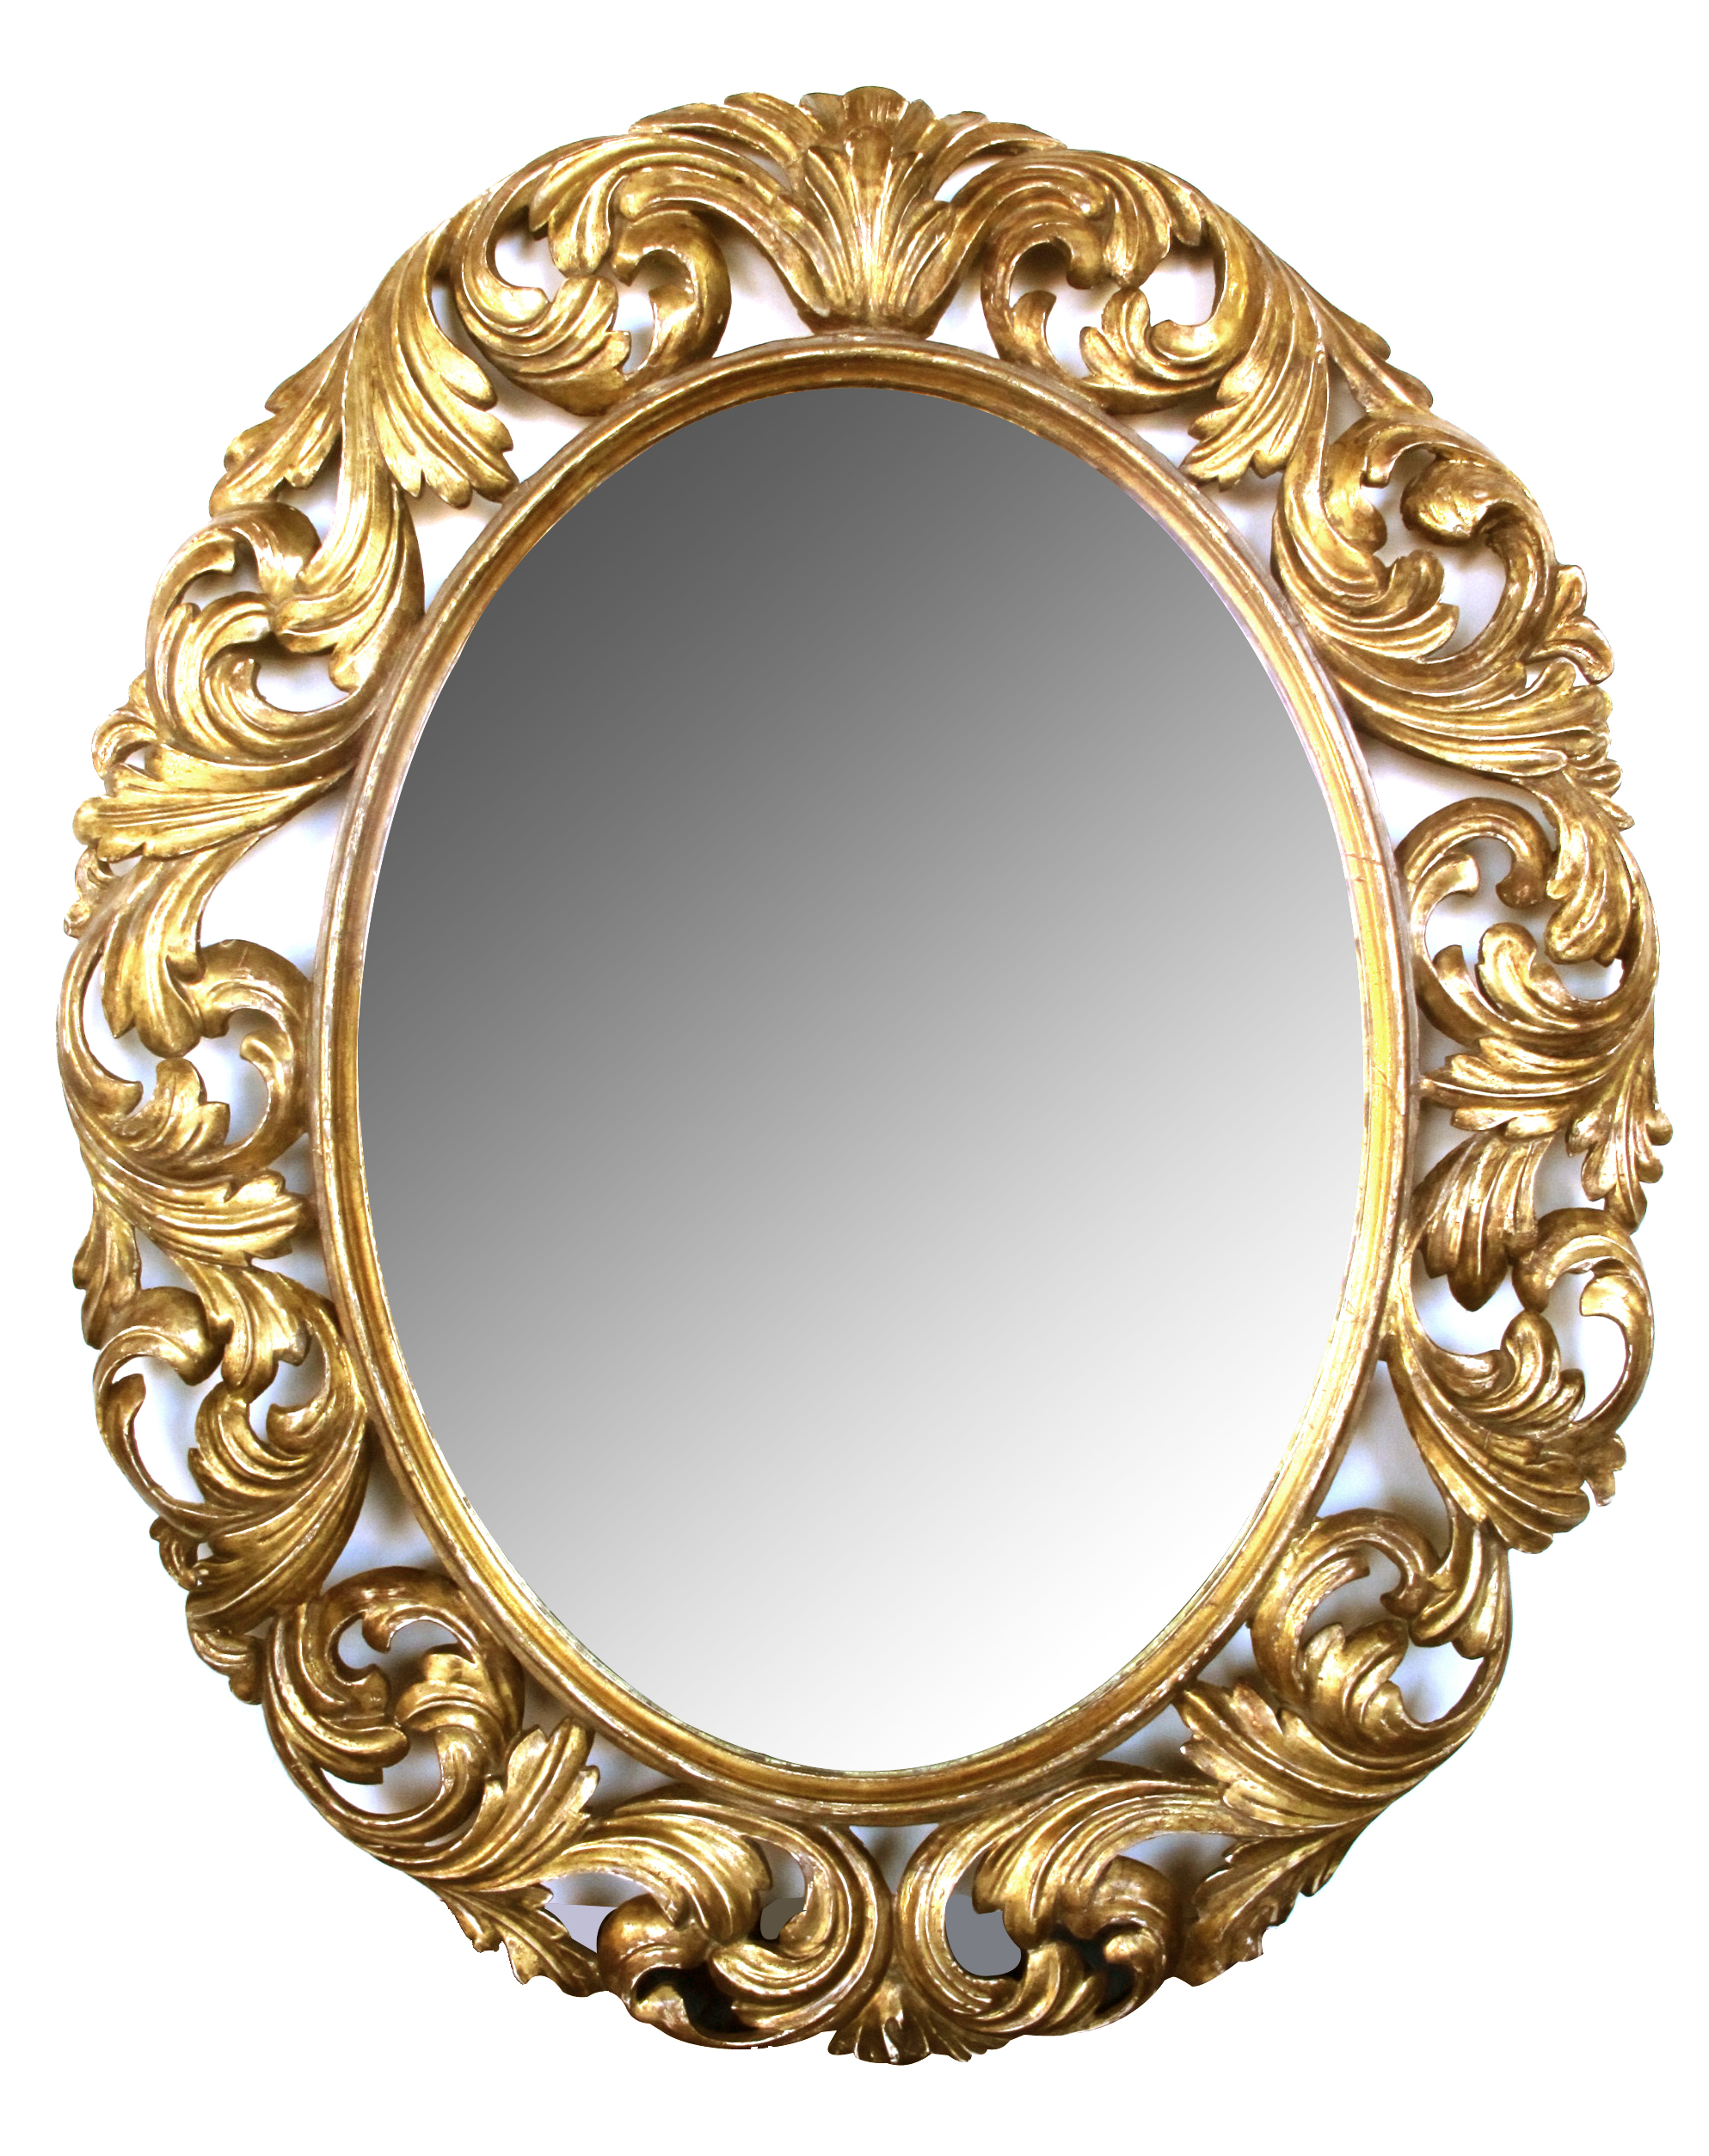 This italian circular wooden wall mirror is no longer available - A Well Carved Italian Baroque Style Oval Gilt Wood Mirror Epoca Antiques 20th Century Furnishings San Francisco